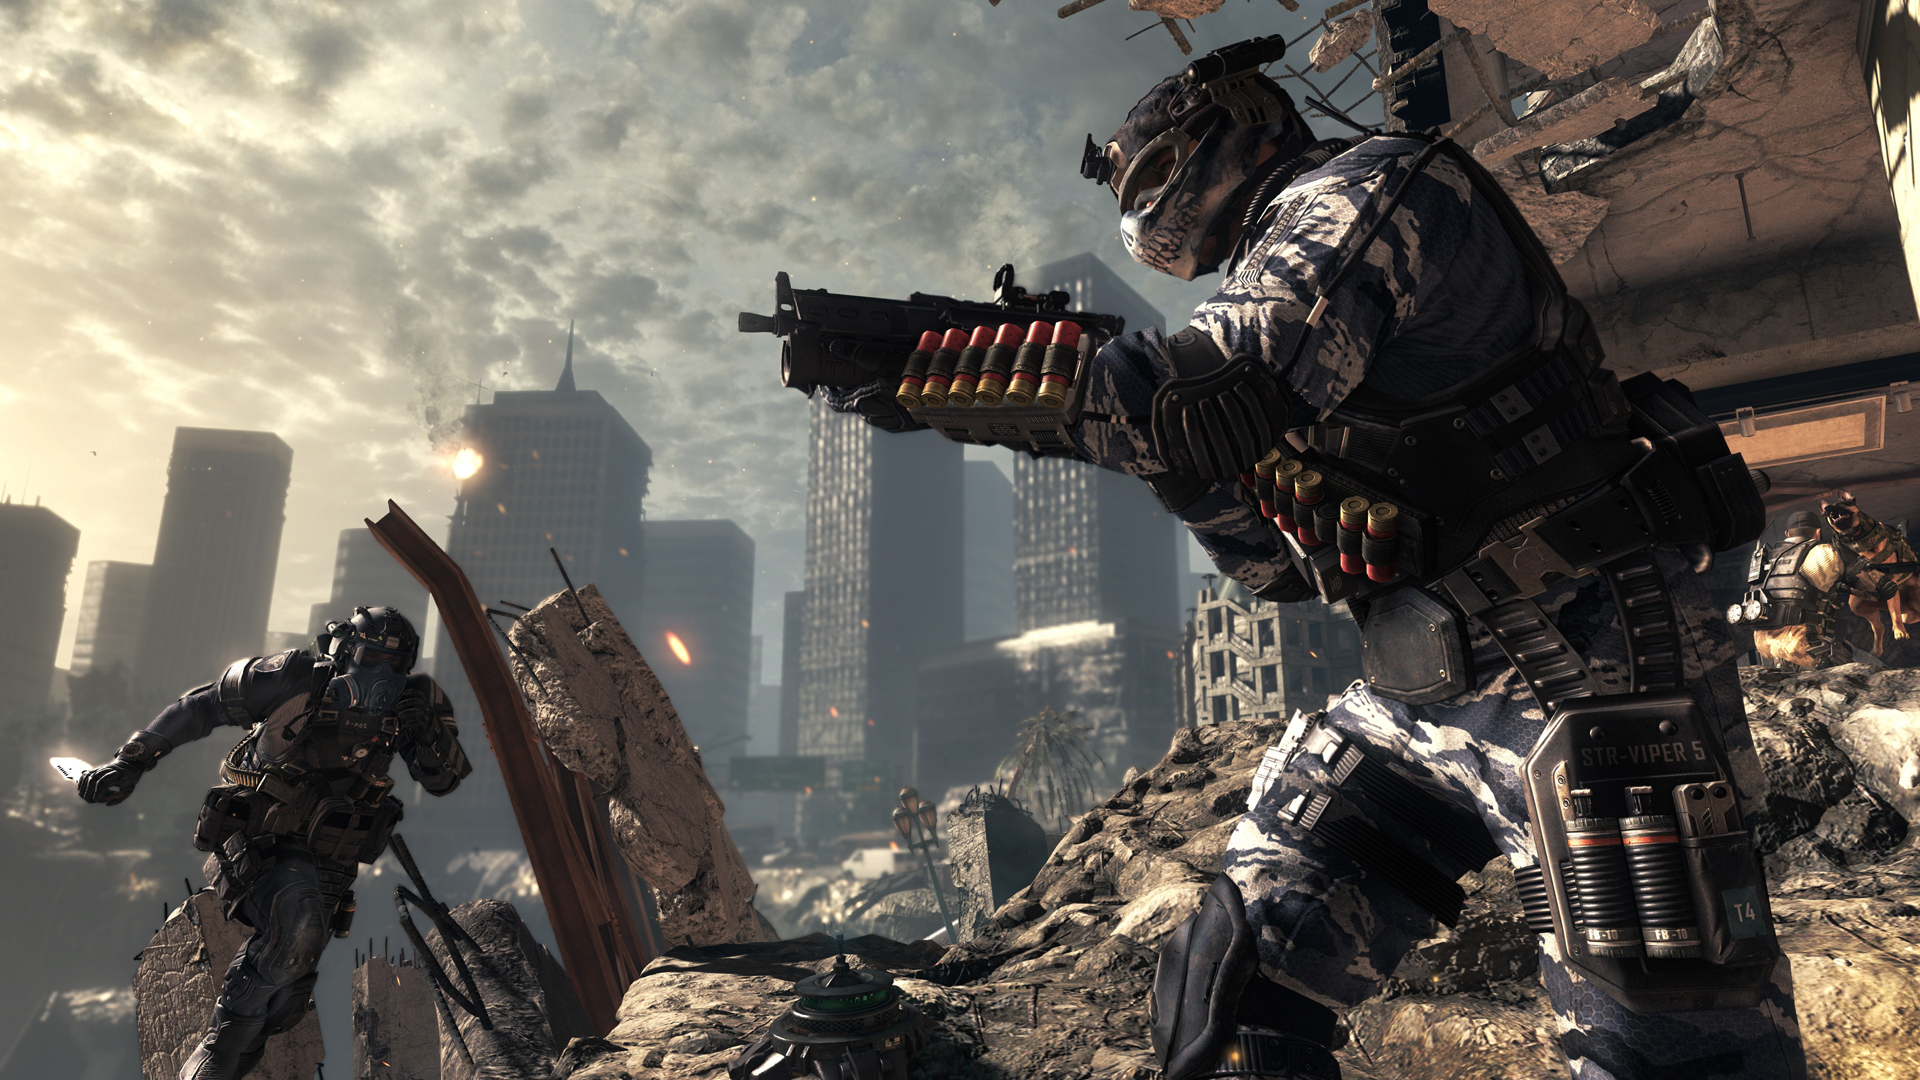 file_7561_Call-of-Duty-Ghosts-Multiplayer-128129